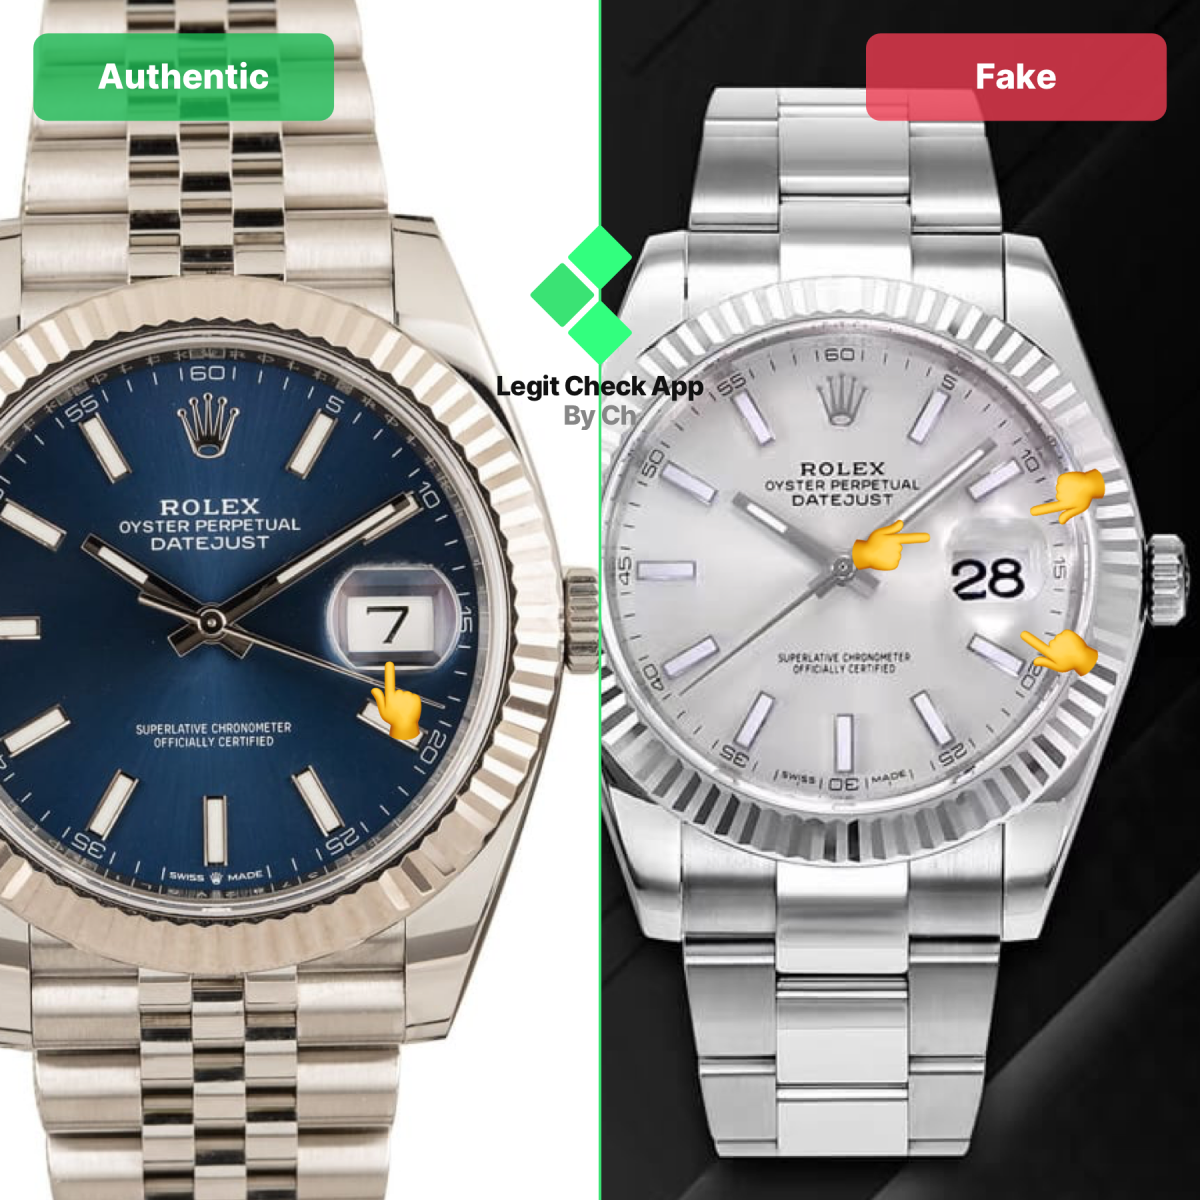 Step 2 Fake Vs Real Rolex Datejust Cyclops Lens Rolex Datejust Rolex Datejust